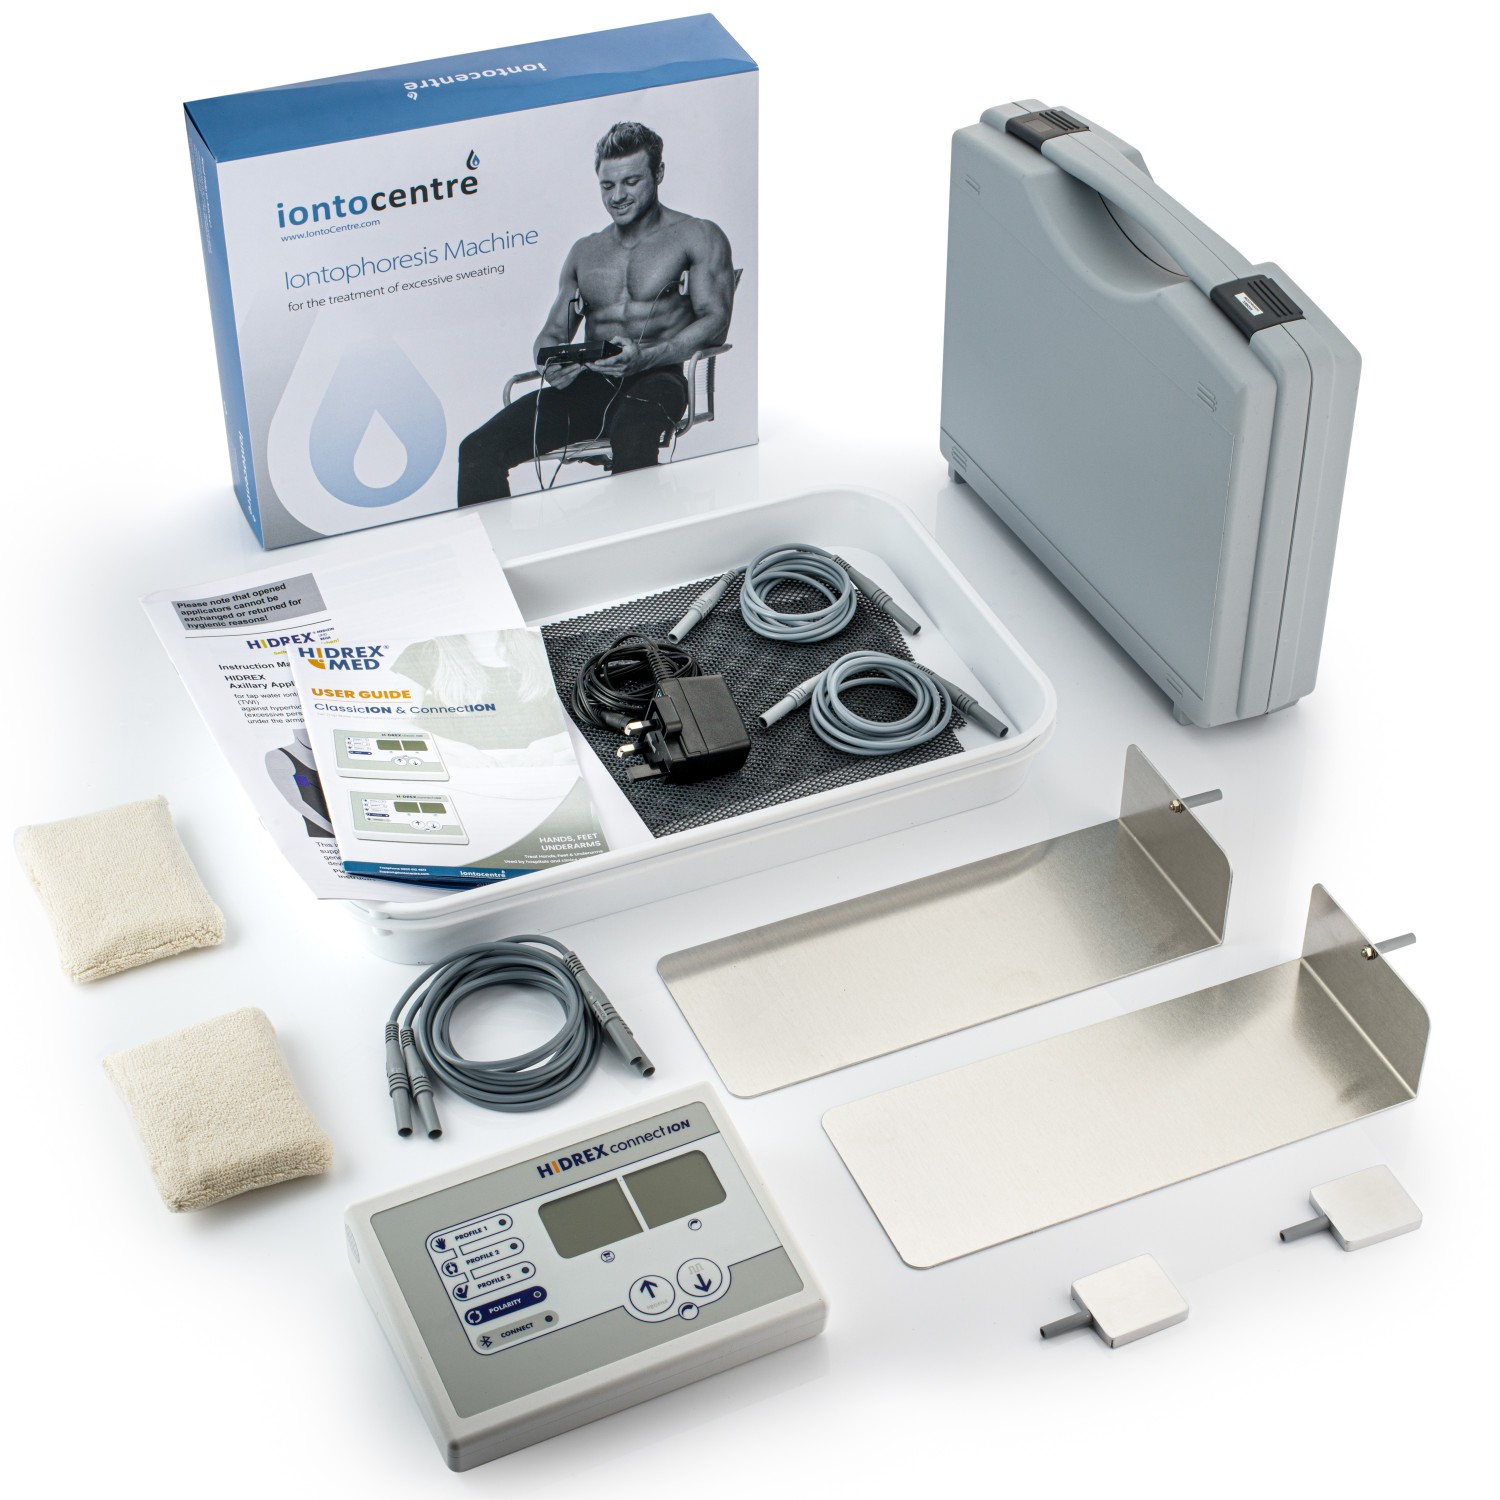 Hidrex ConnectION iontophoresis machine for hands, feet and underarms